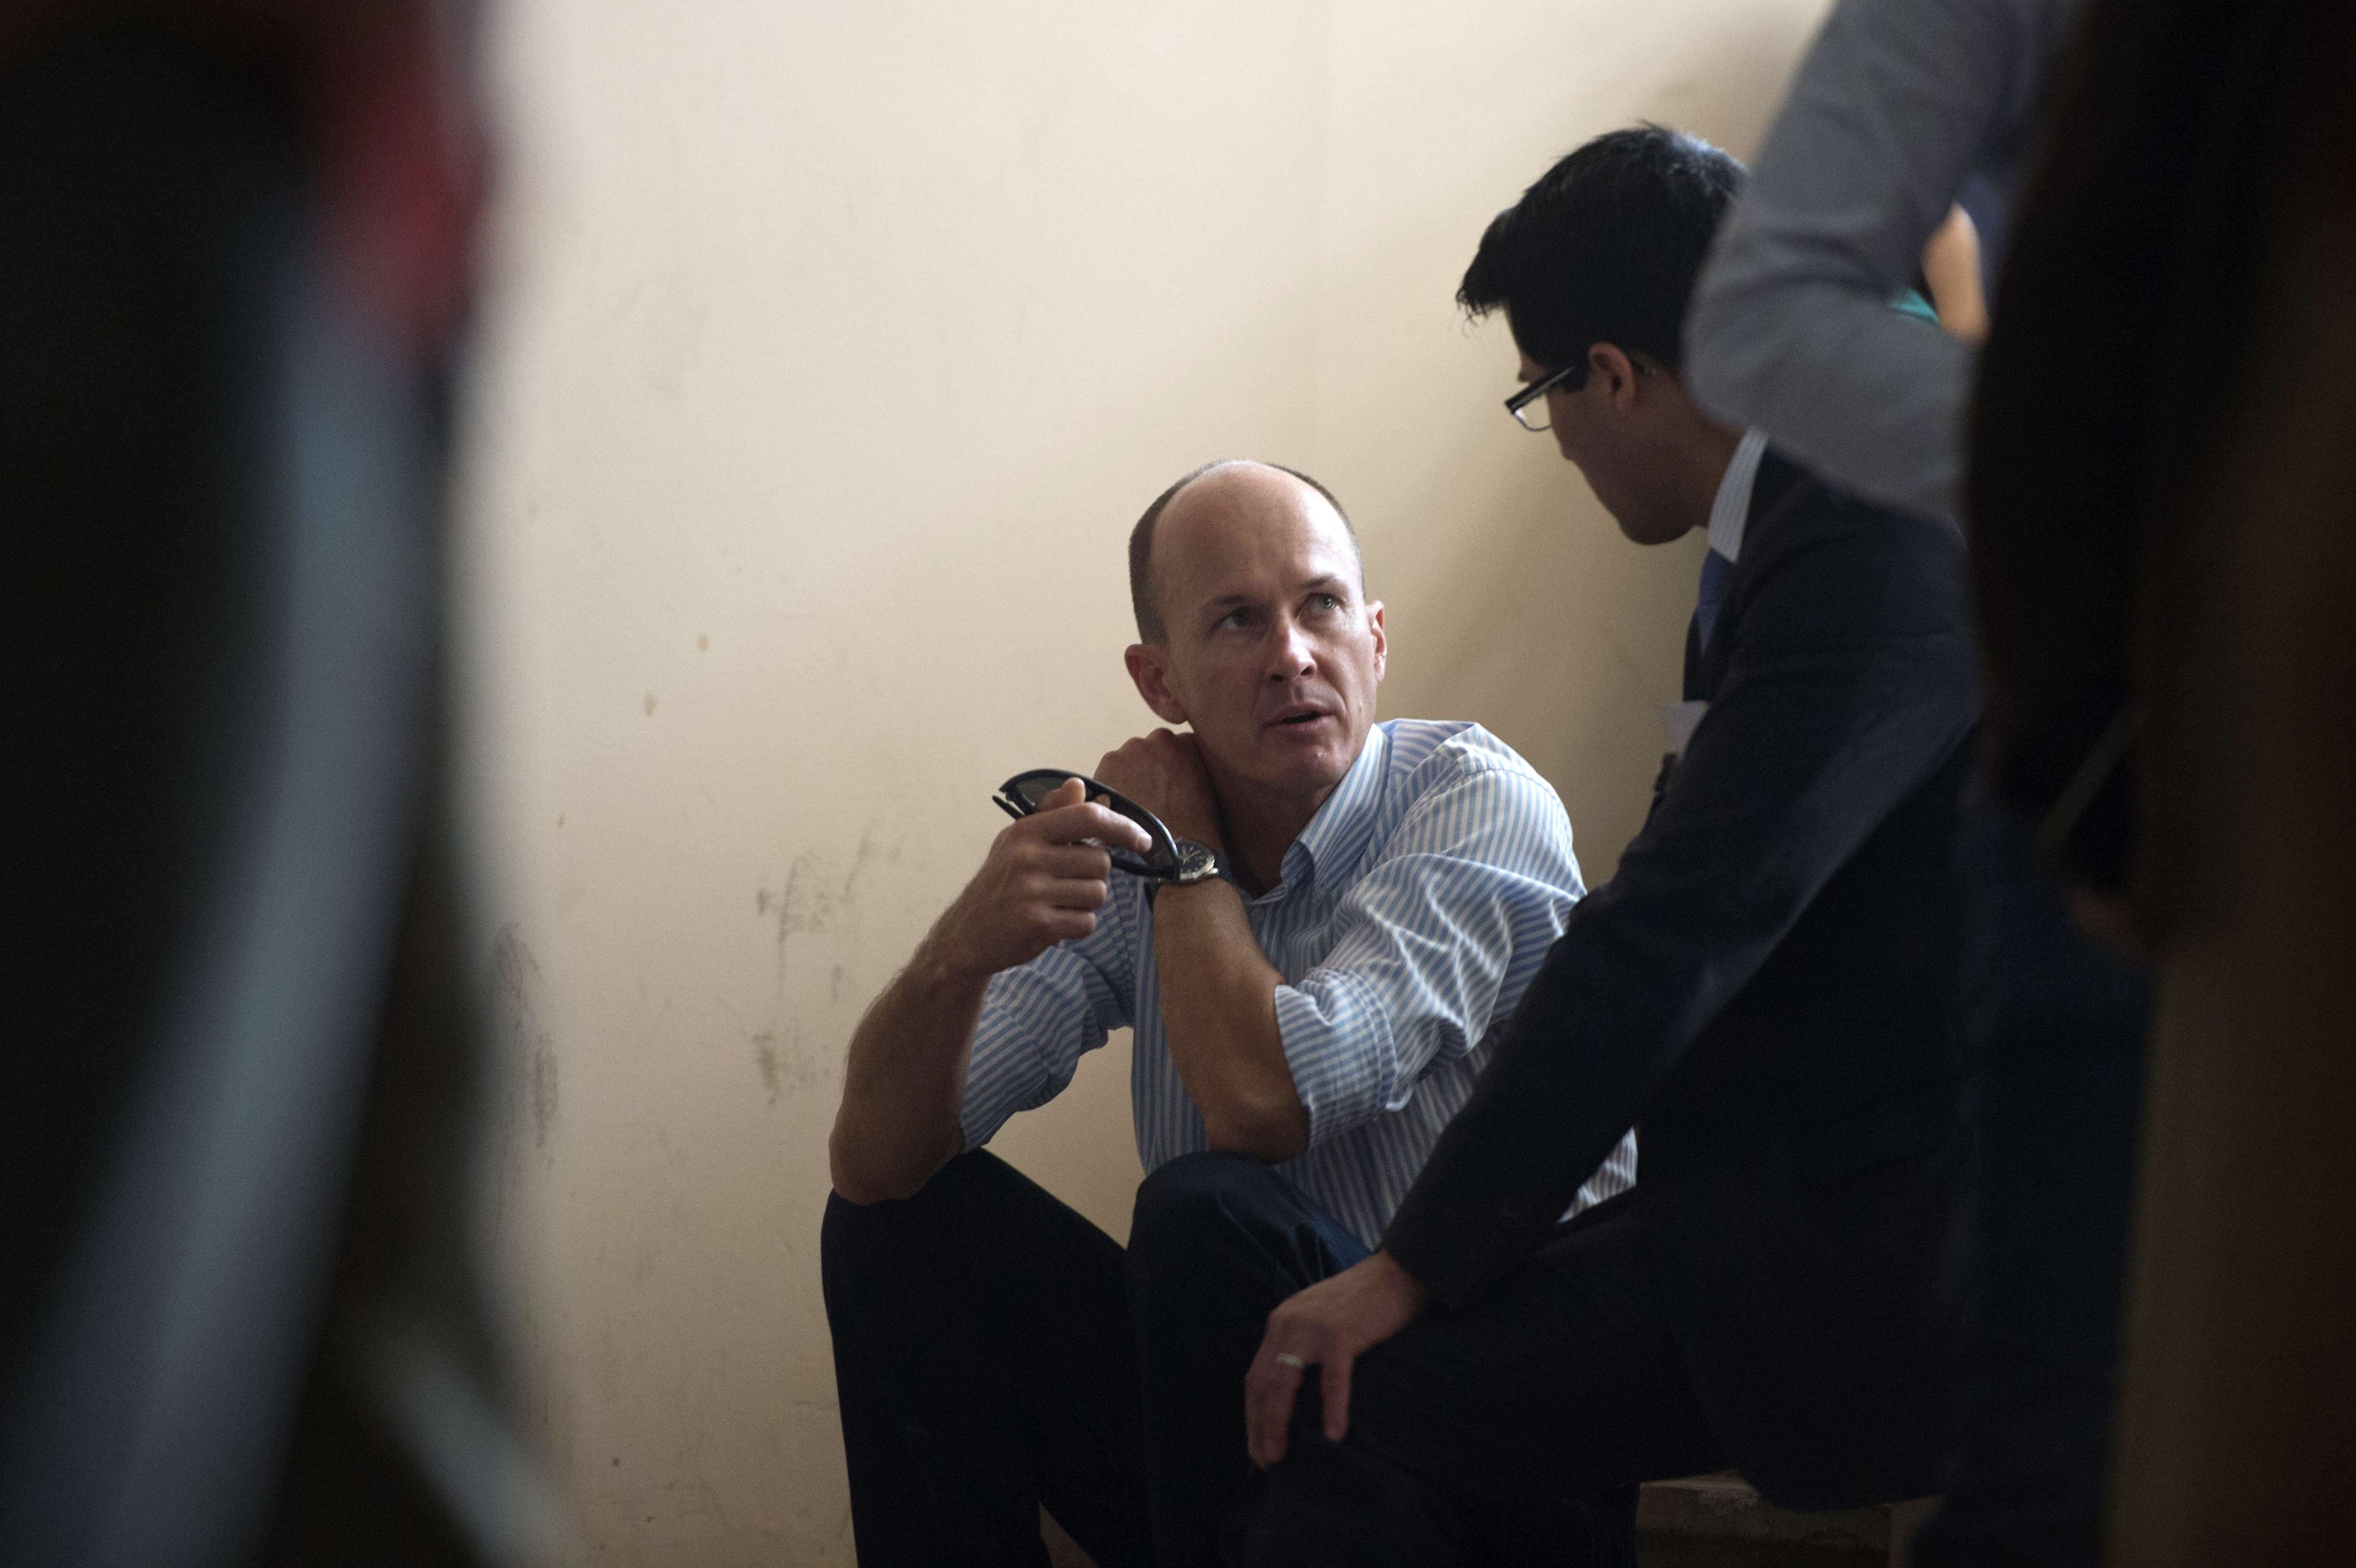 Andrew Greste, brother of the Australian journalist Peter Greste of Al-Jazeera, talks sitting on stairs during the trial of his brother along with his colleagues for allegedly supporting the Muslim Brotherhood at Cairo's Tora prison on March 5, 2014. The high-profile case that sparked a global outcry over muzzling of the press is seen as a test of the military-installed government's tolerance of independent media, with activists fearing a return to autocracy three years after the Arab Spring uprising that toppled Hosni Mubarak.   (AFP PHOTO / KHALED DESOUKI)